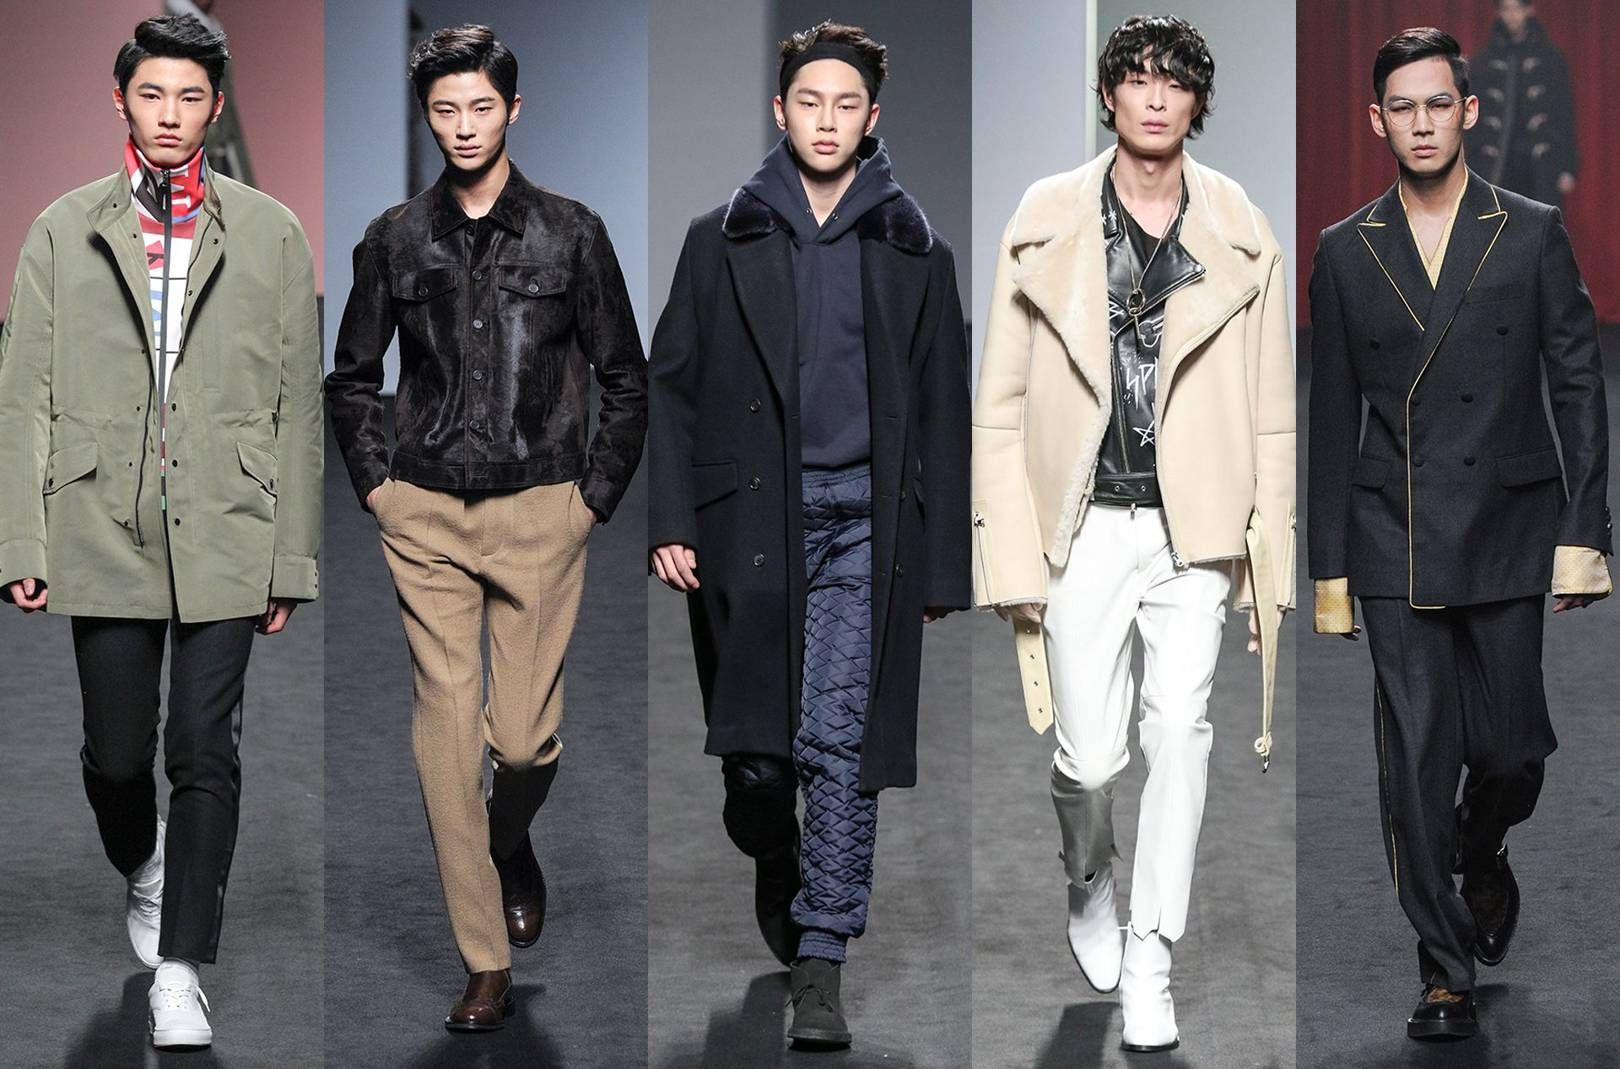 Image Result For Best Dressed Kpop Idols Male Korean Fashion Men S Fashion Brands Korean Fashion Trends